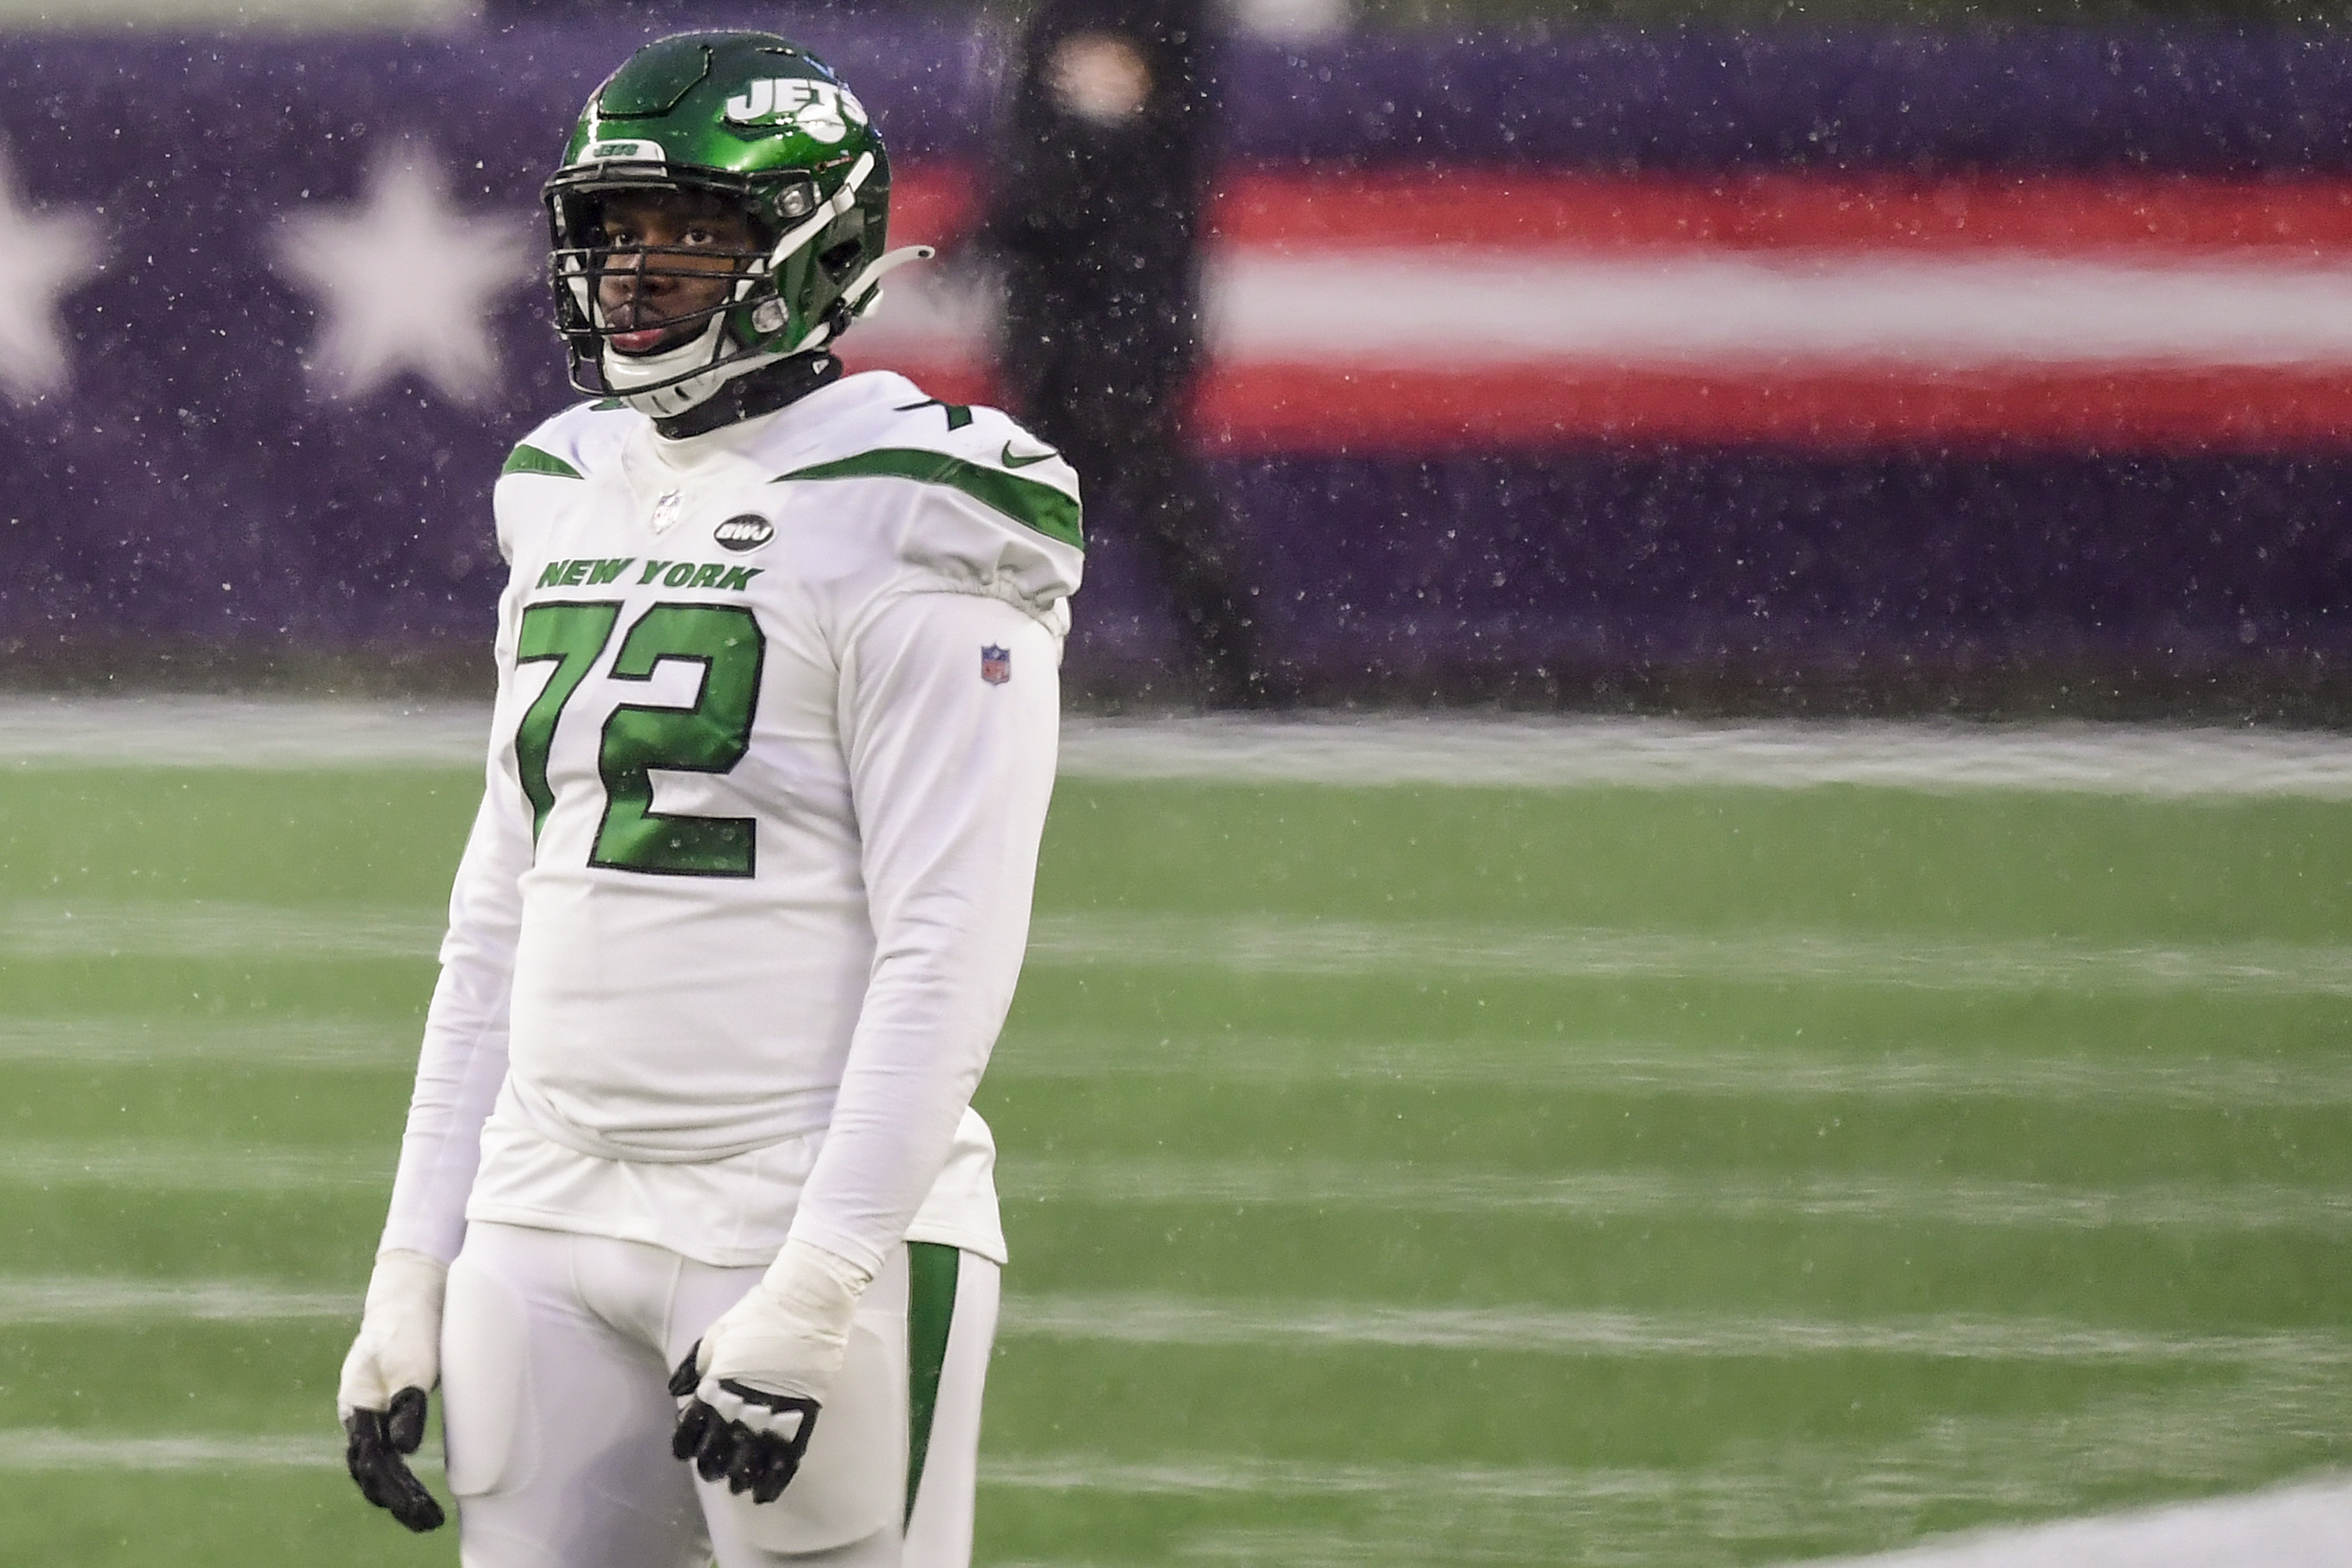 Jets OL Cameron Clark expected to make full recovery